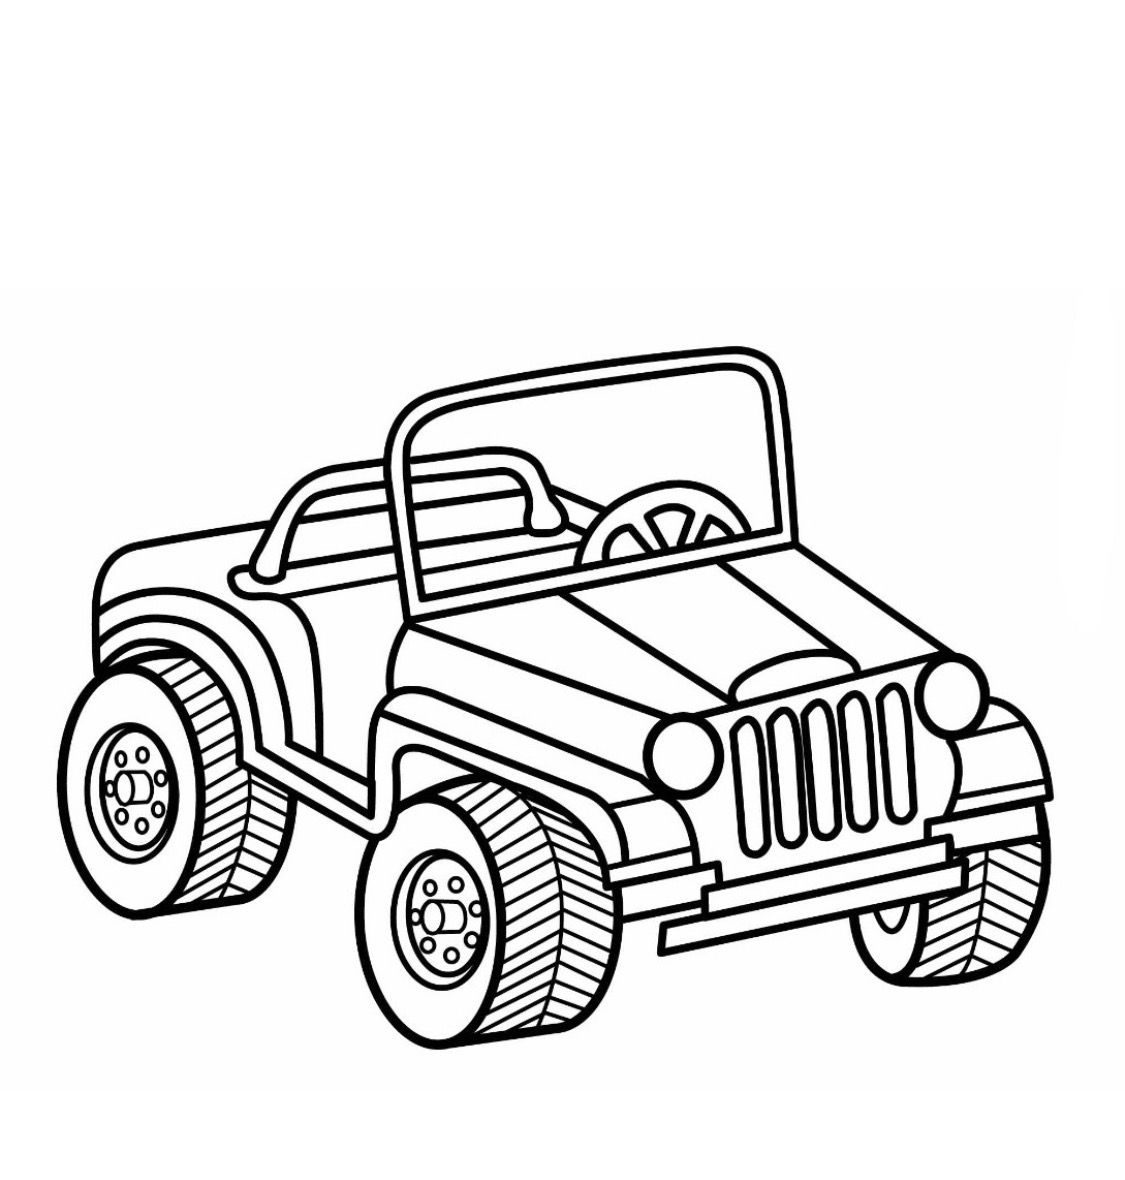 Jeep Coloring Page Cars Coloring Pages Safari Jeep Coloring Pages For Kids